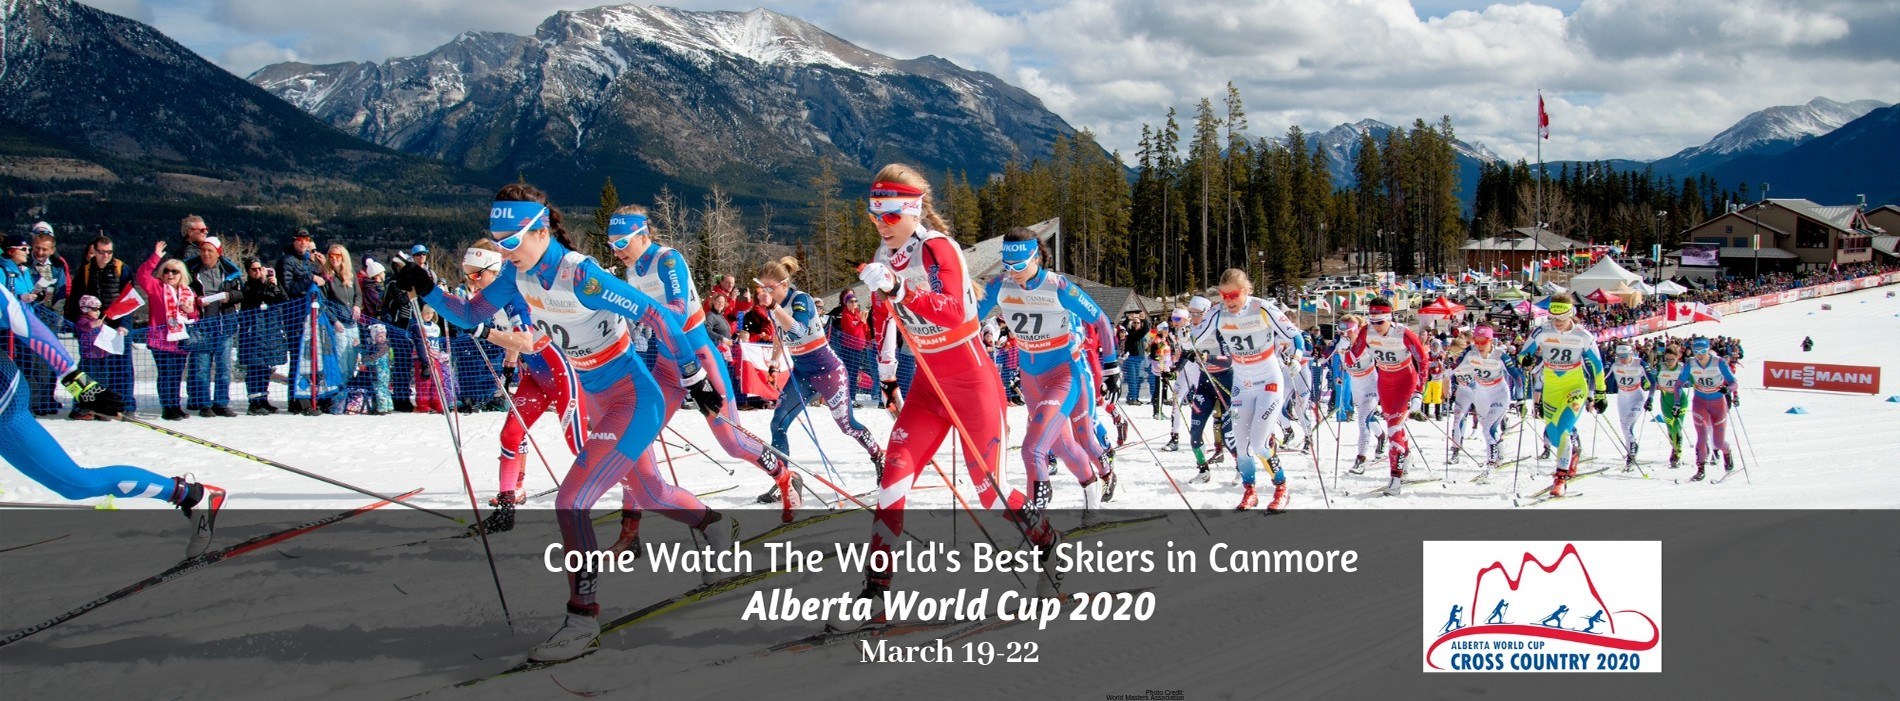 Alberta World Cup Canmore 2020